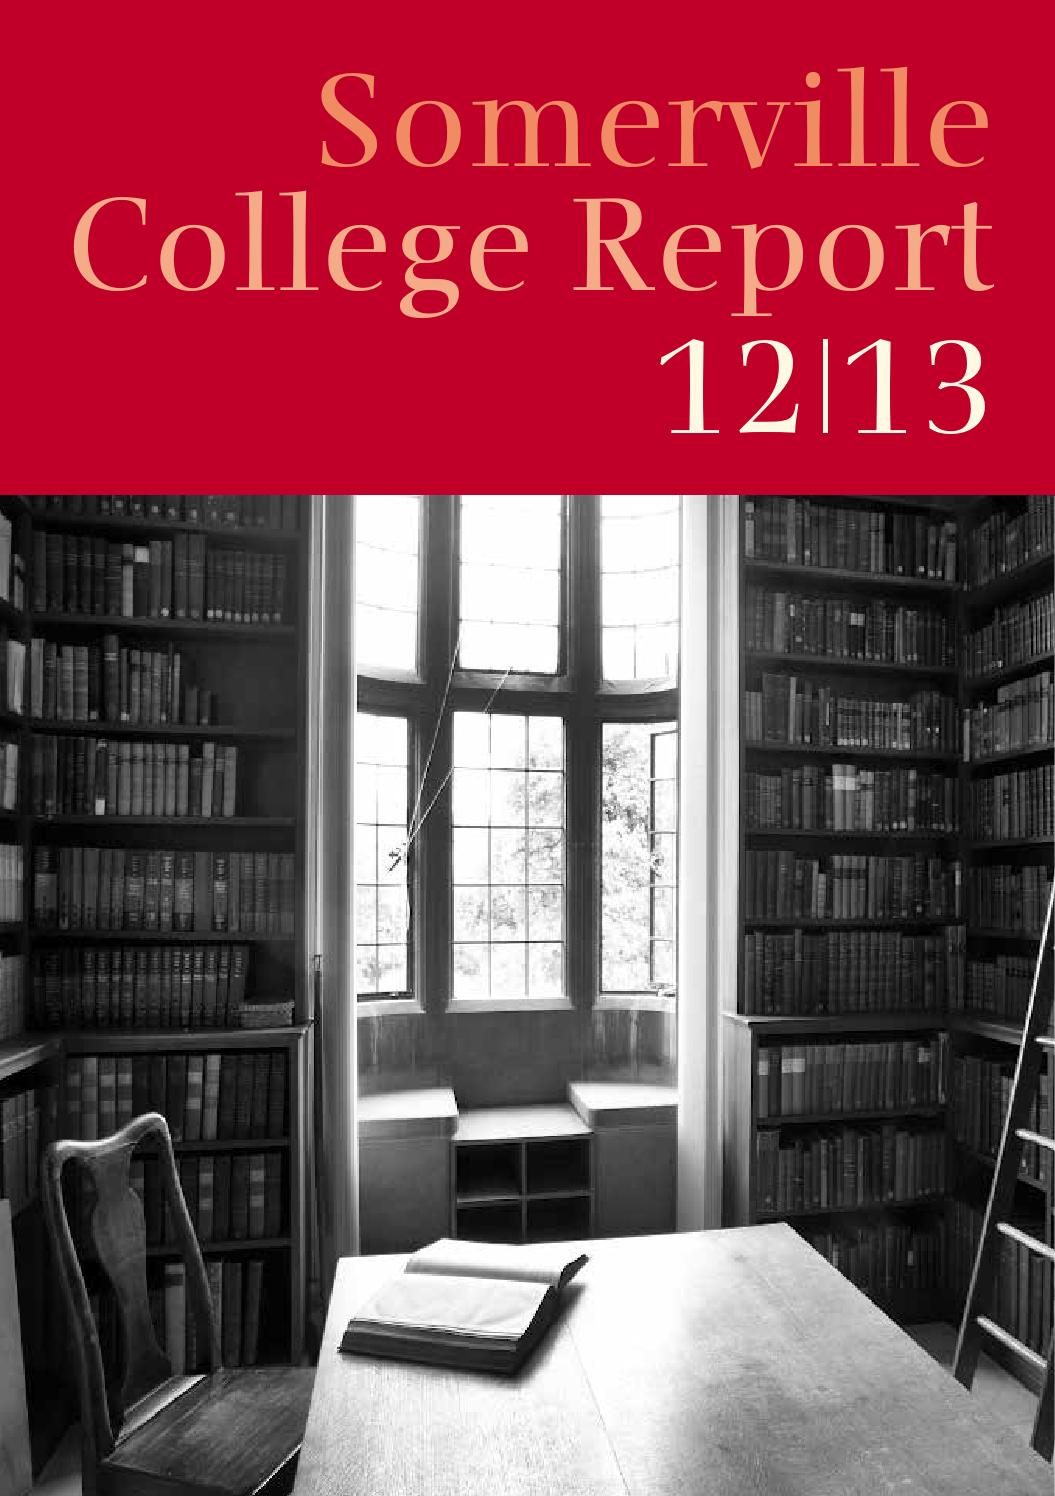 Andys Hostel Konstanz College Report 2012 13 By Somerville College Issuu